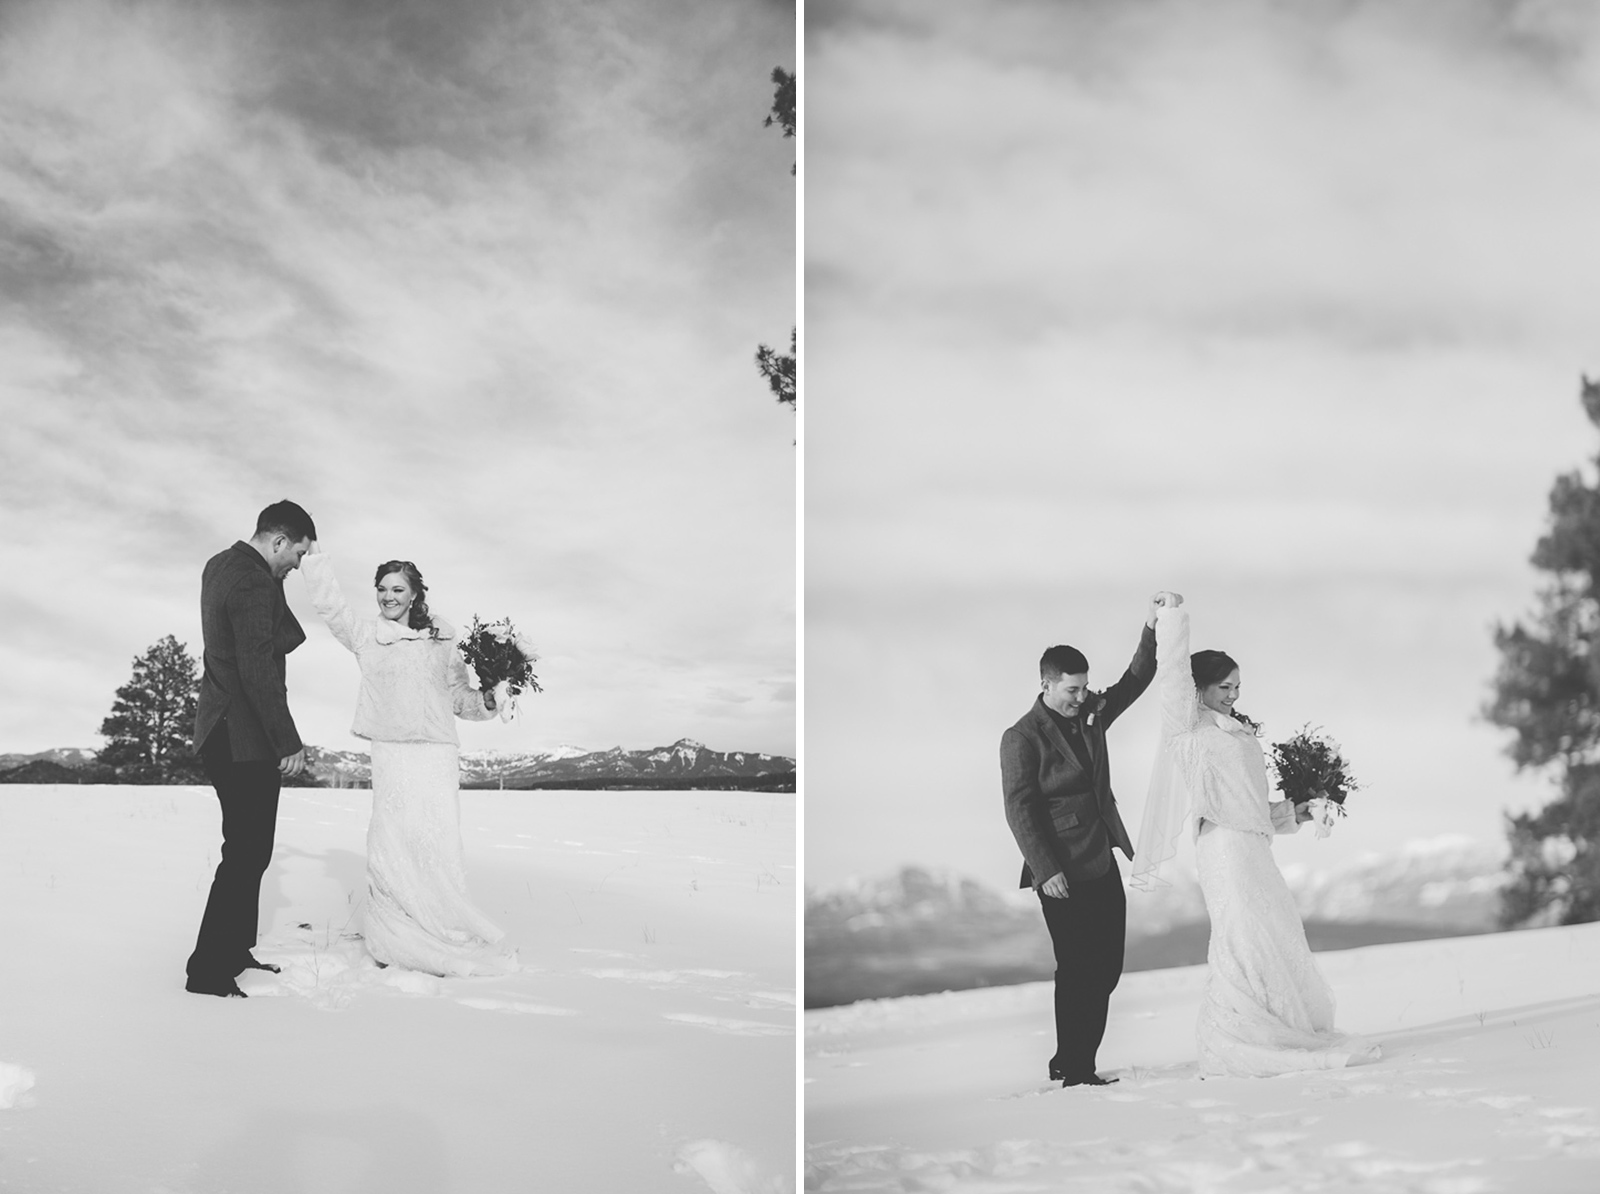 135-wedding-photographer-captures-newlyweds-in-snow-during-a-winter-snow-wedding-in-the-mountains-in-colorado